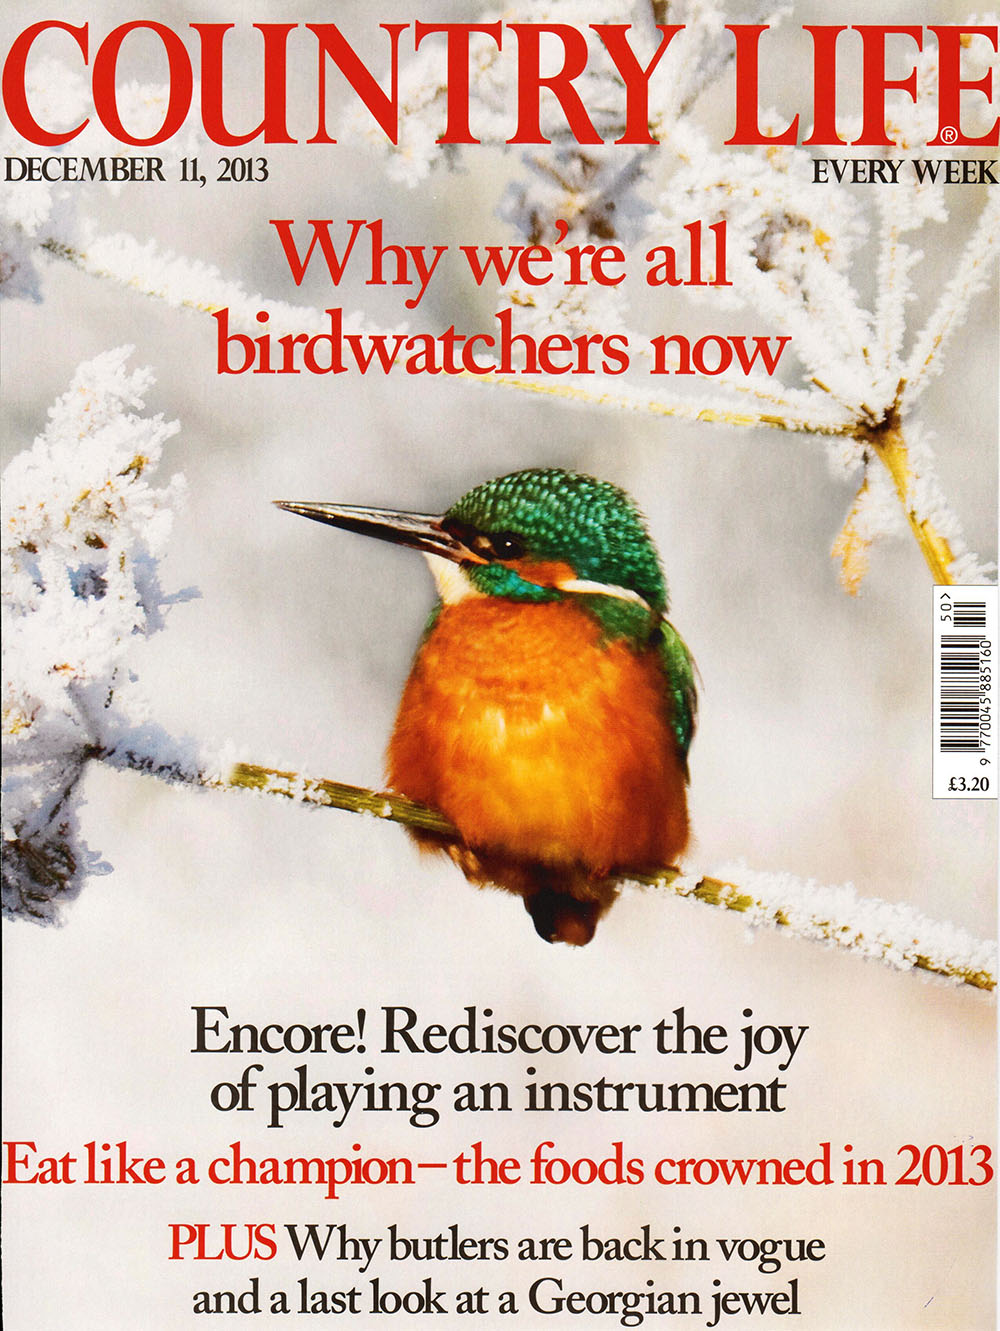 Country Life Dec 2013 cover.jpg